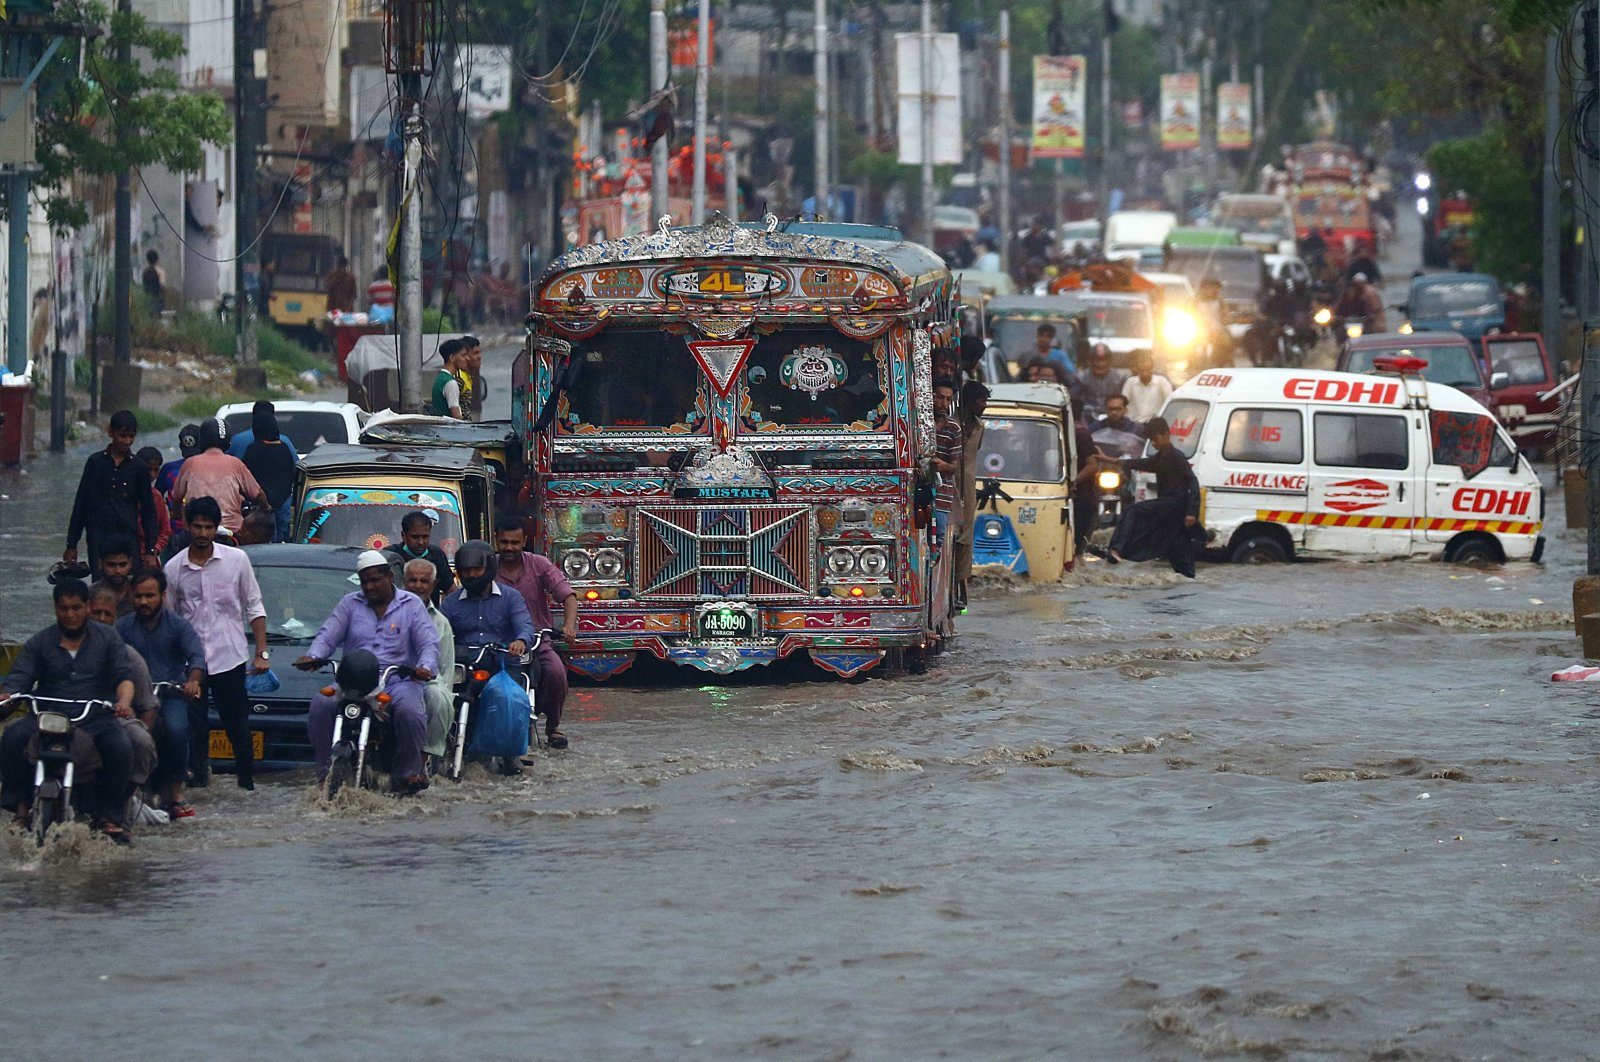 People make their way through a flooded road after monsoon rains in Karachi, Pakistan, 07 August 2020. (EPA Photo)